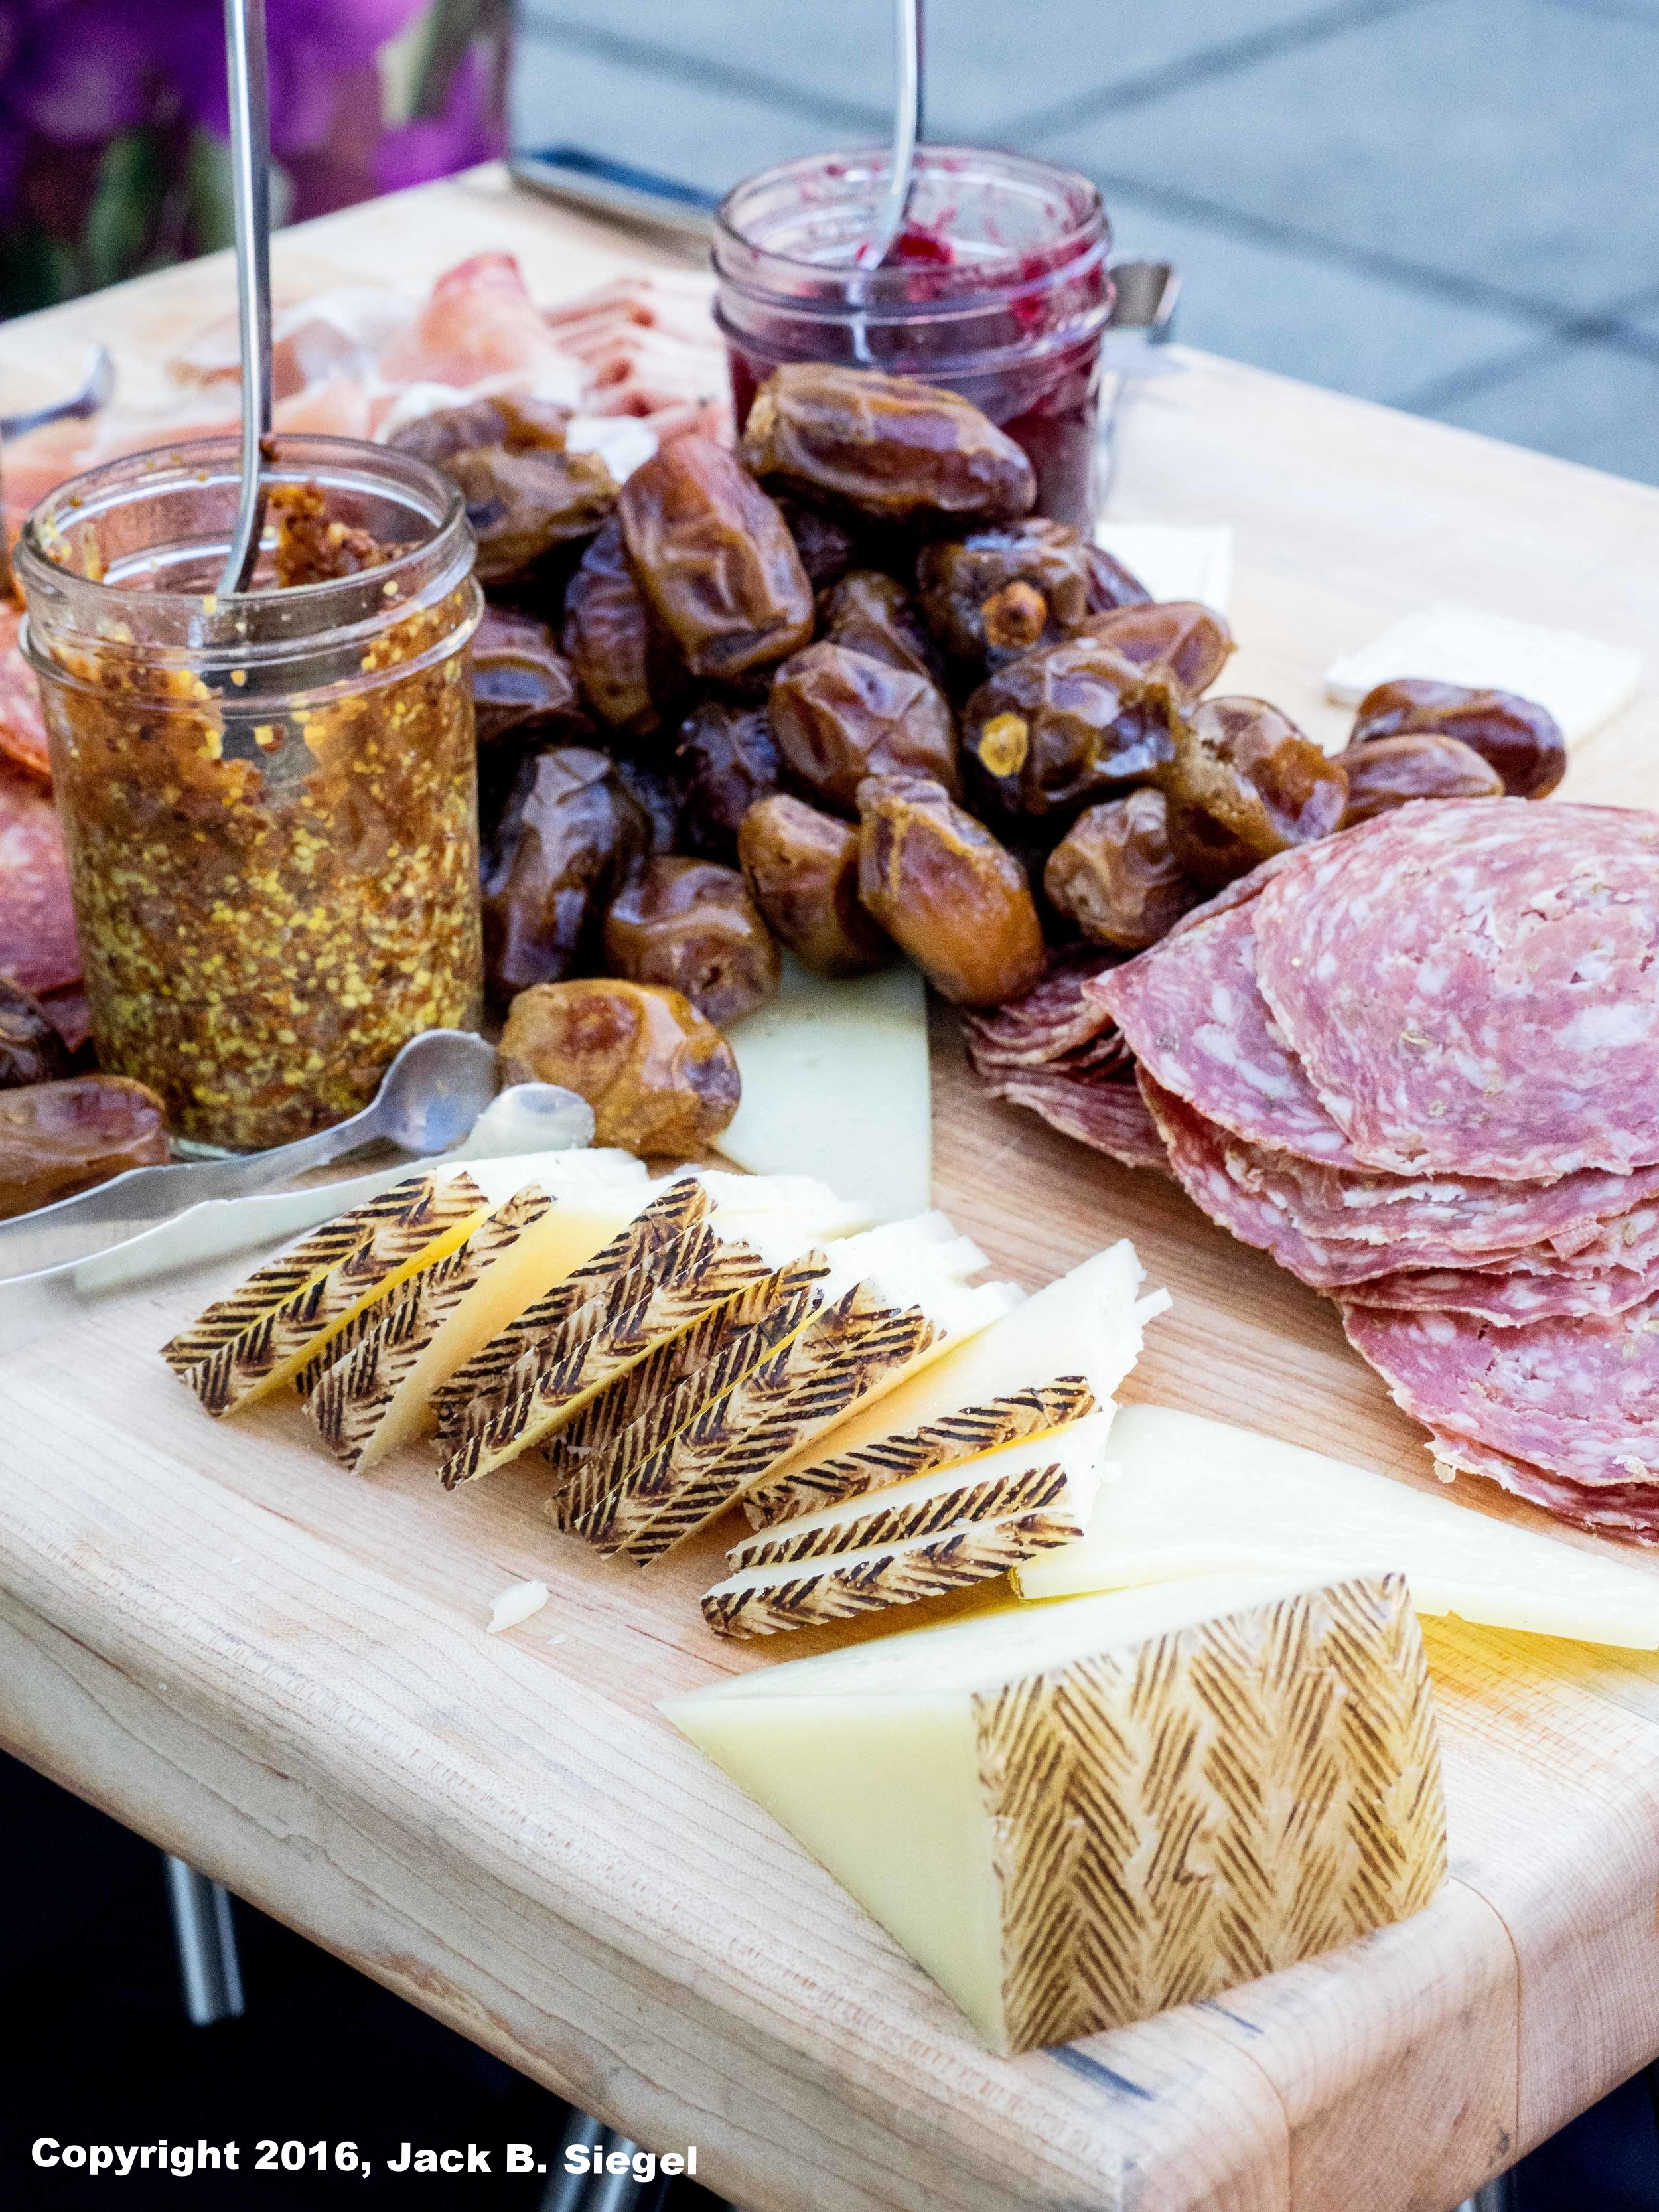 Italian Meats, Cheese, and Figs